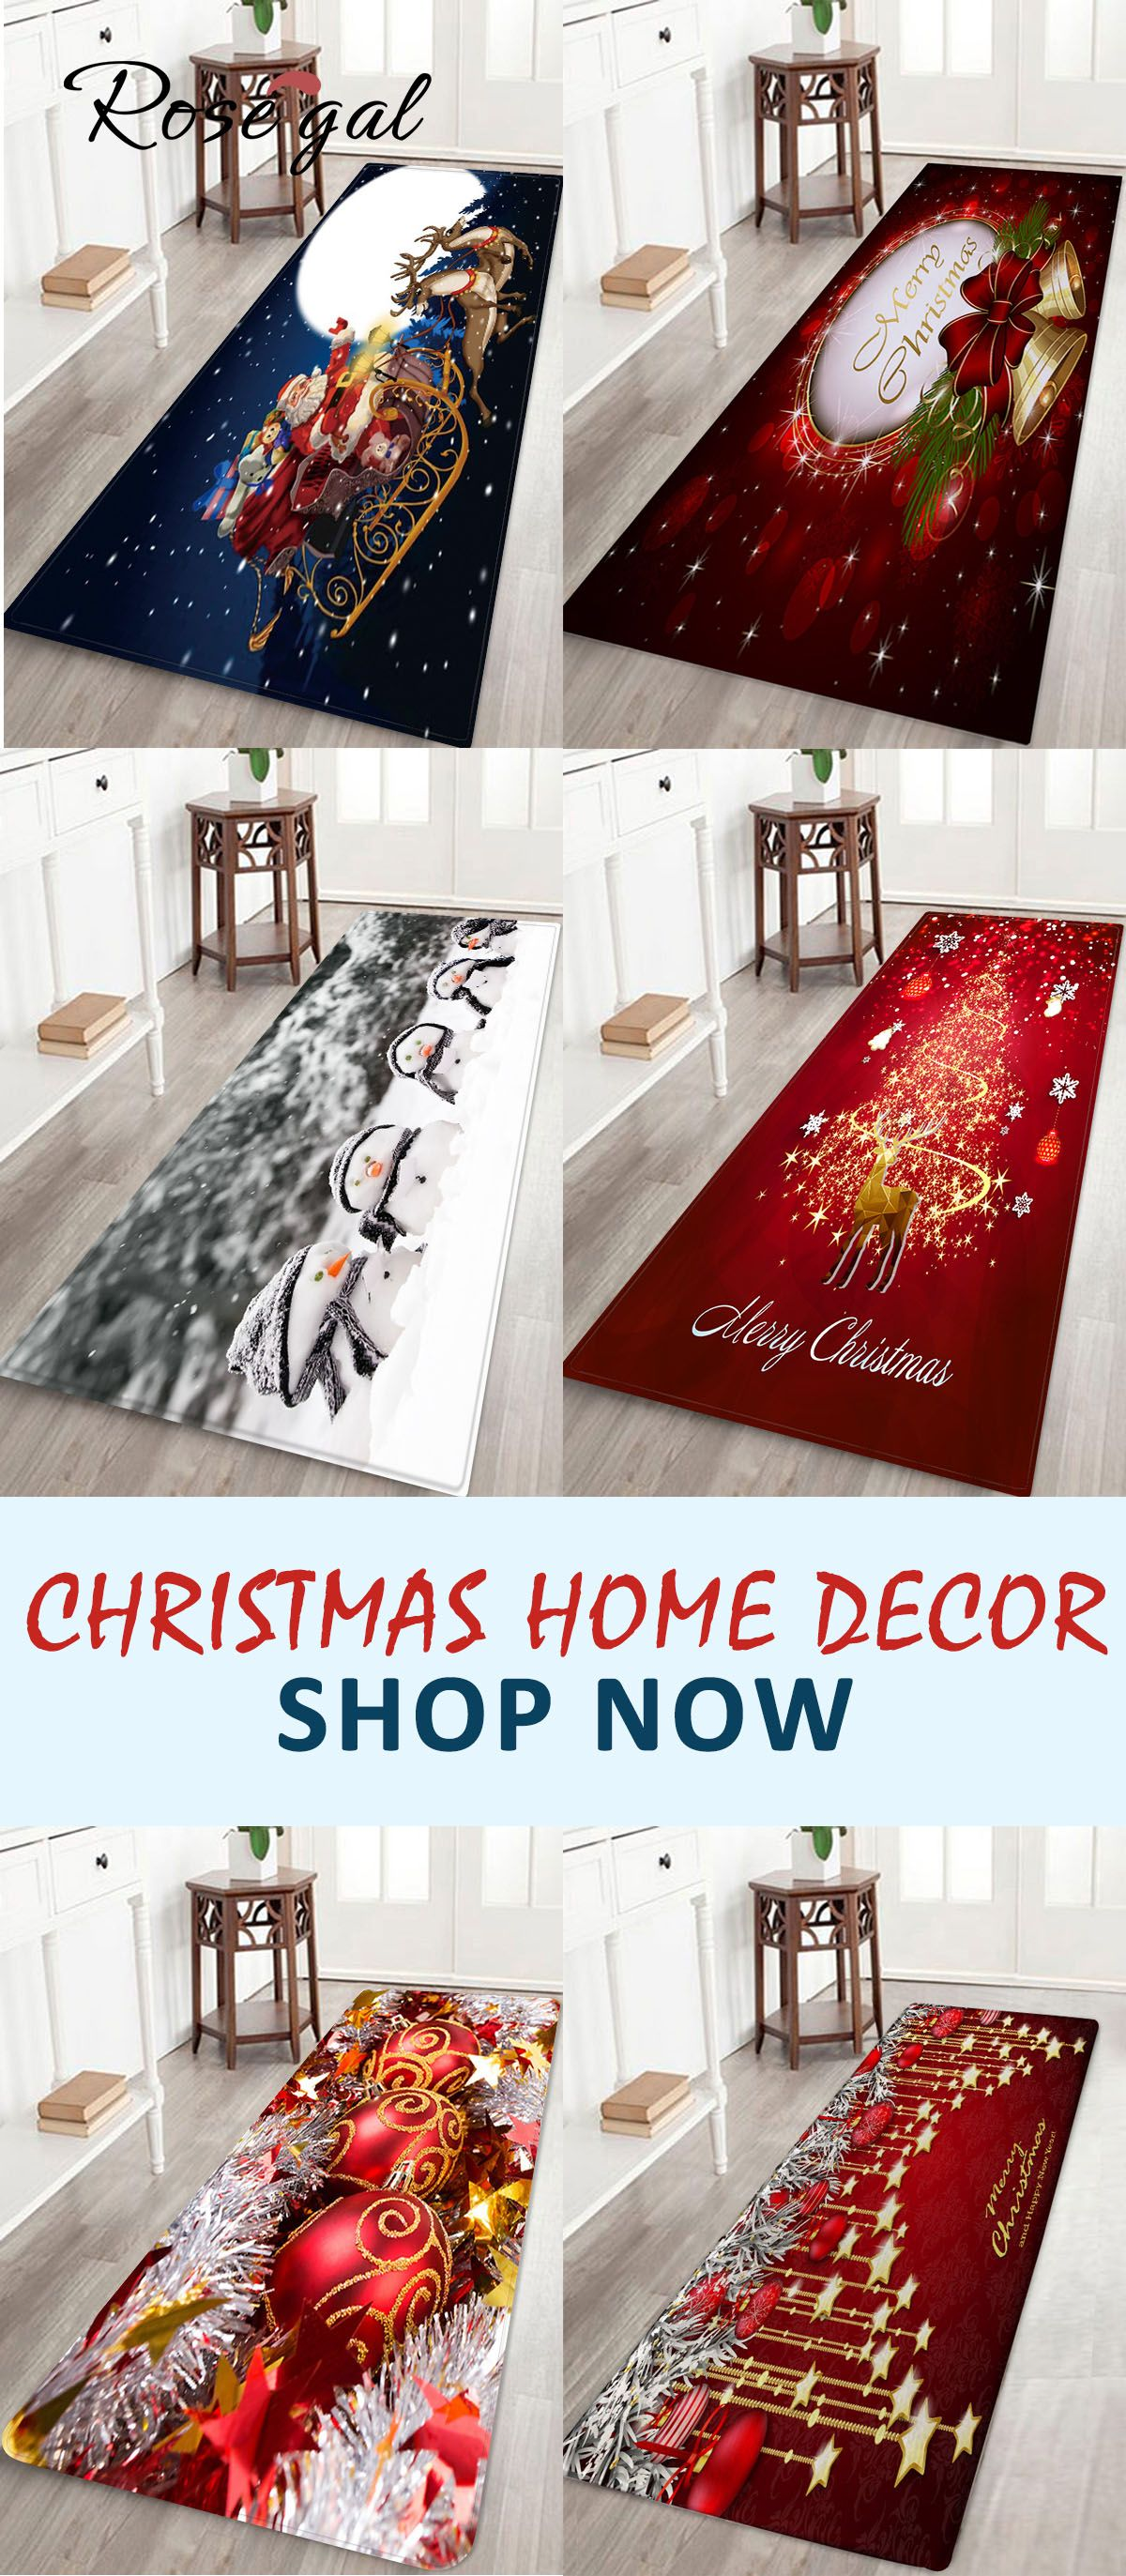 Free shipping over $45 up to off Rosegal Christmas decor ideas